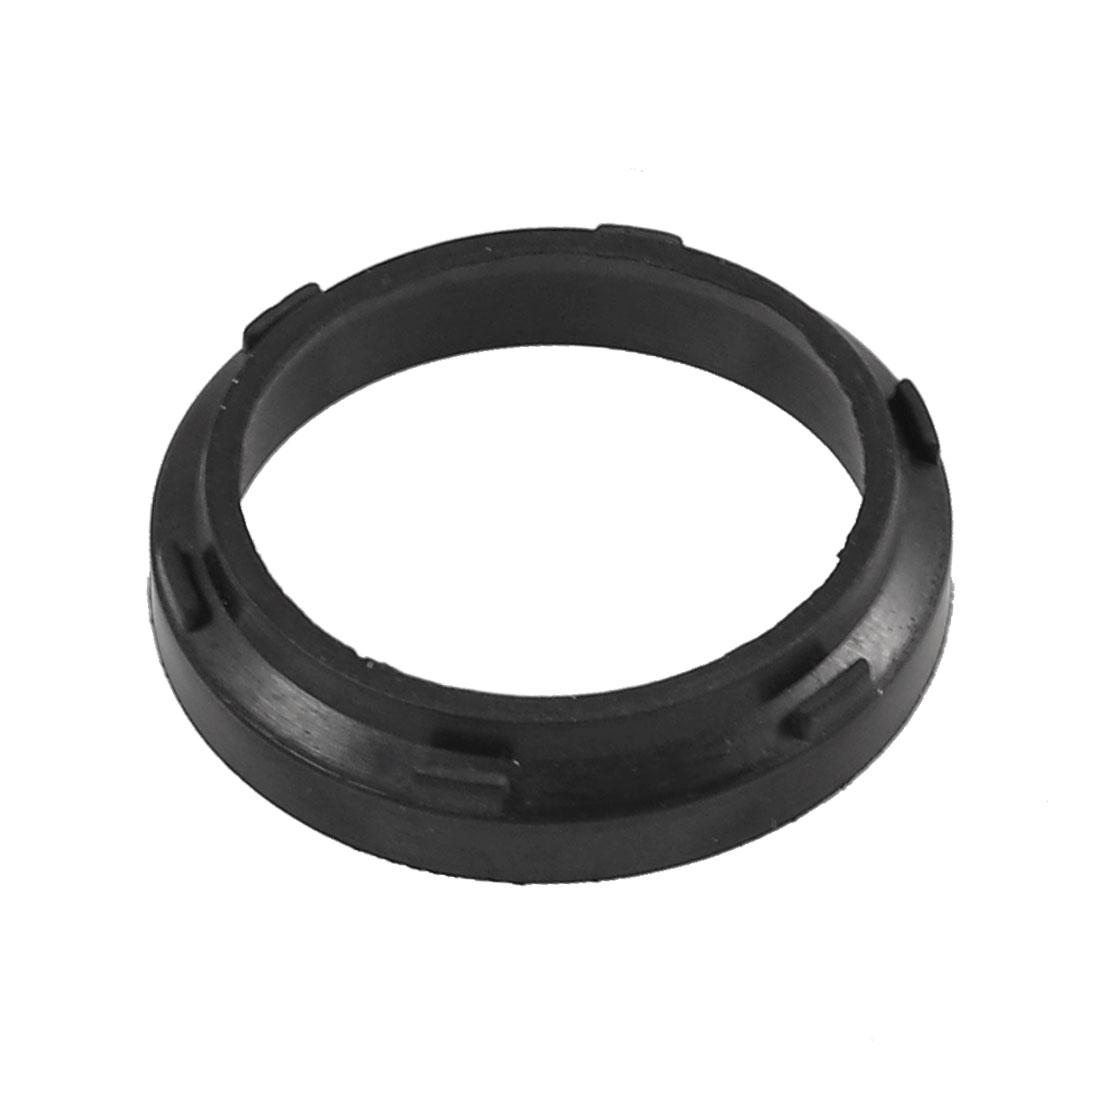 Black NBR Wiper Pneumatic Dust Seal 35mm x 28mm x 8mm for Air Cylinder